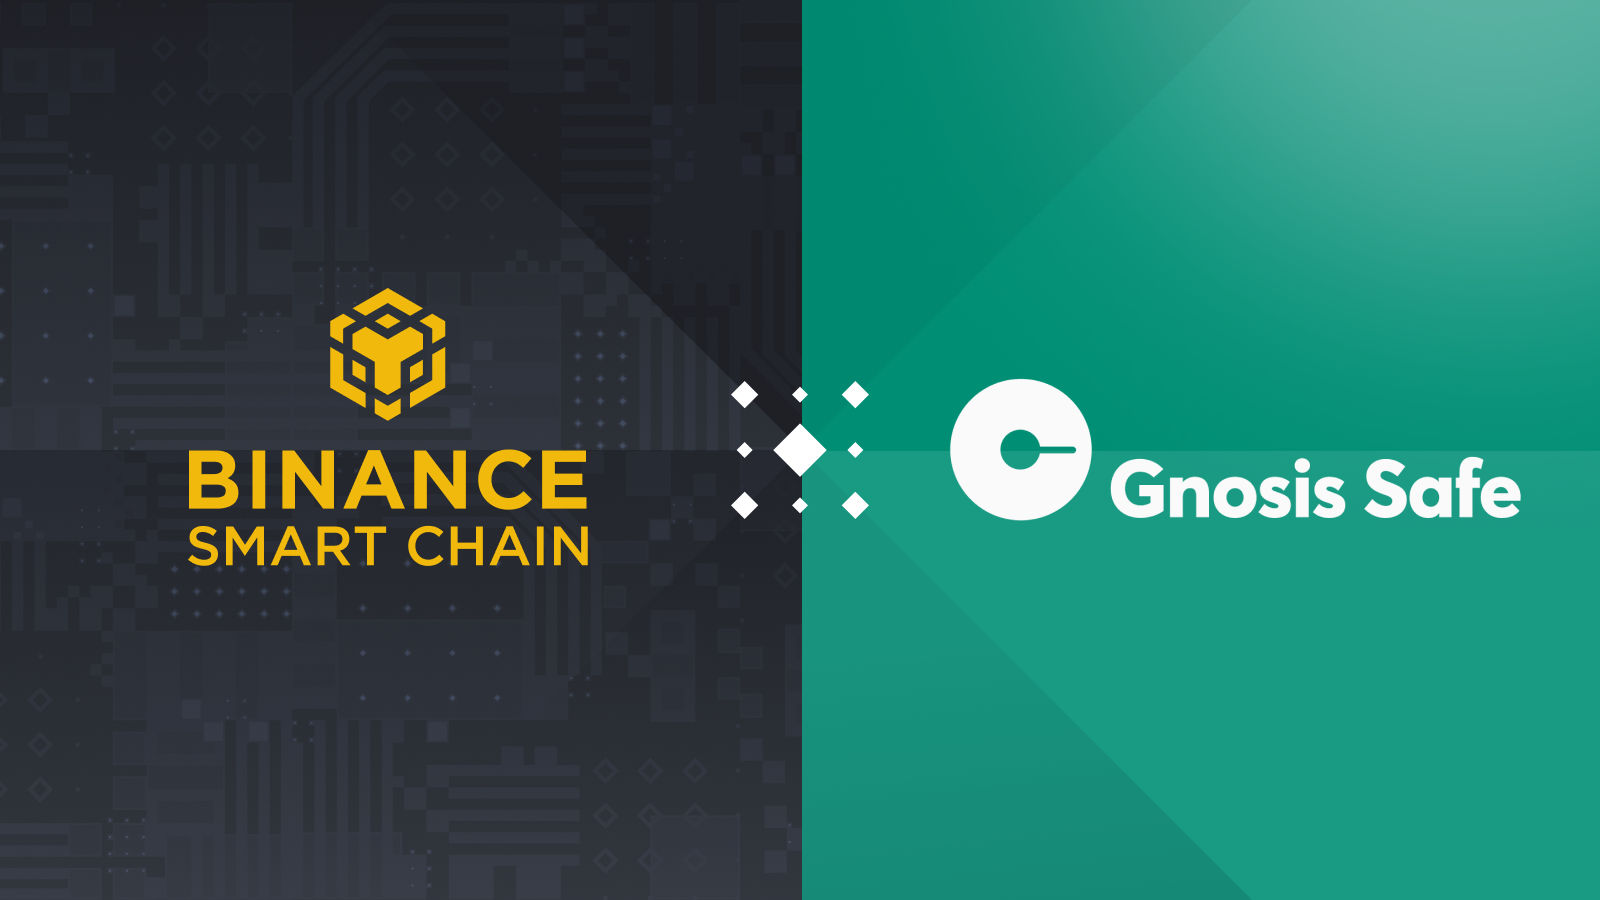 Announcing the Gnosis Safe Multisig Launch on Binance Smart Chain